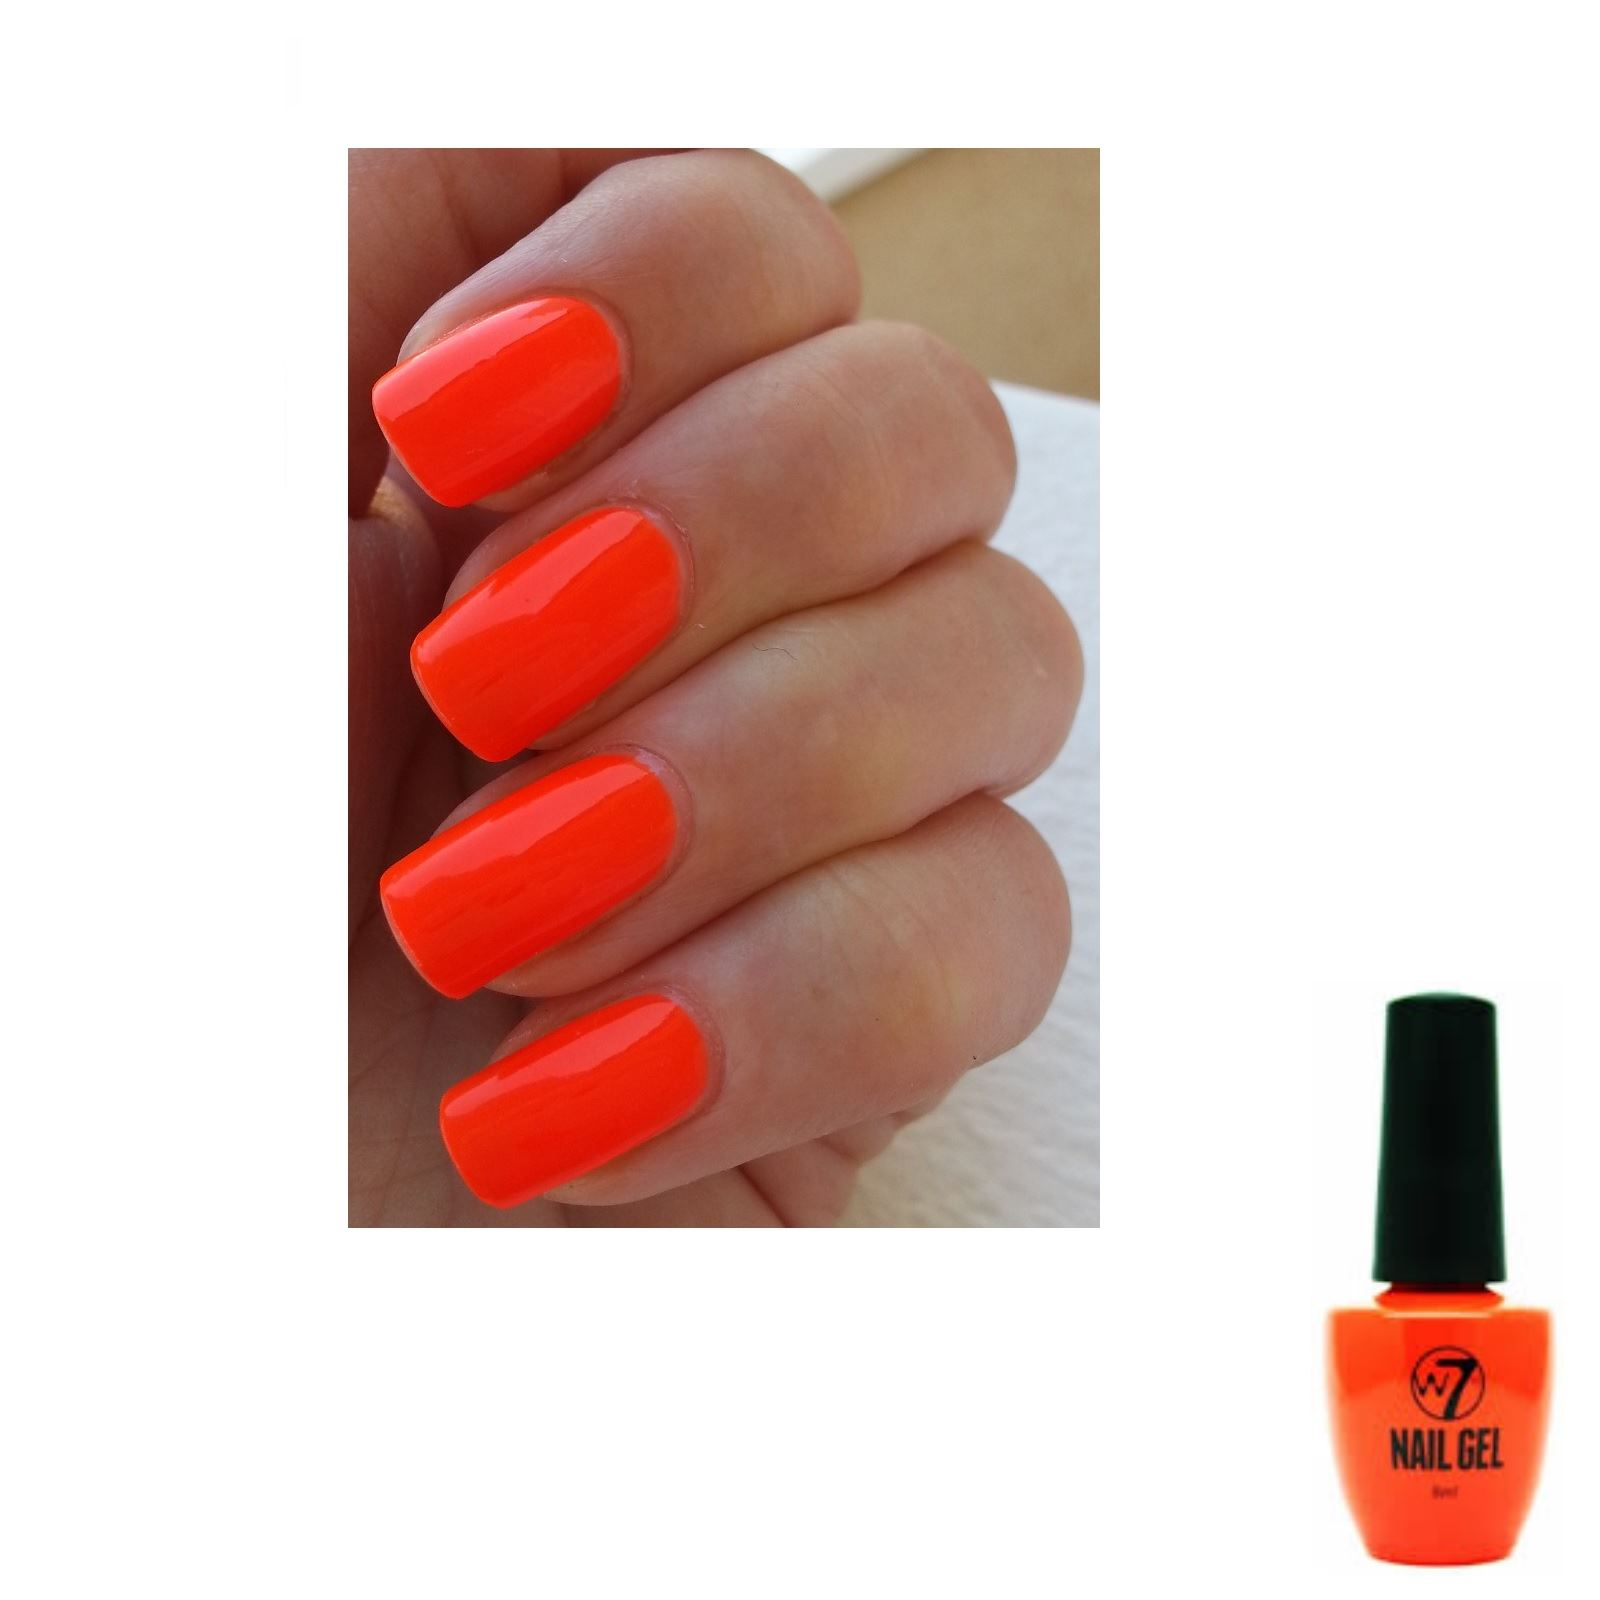 W7 Nail Gel - UV Long Lasting Nail Polish Manicure Nails | eBay